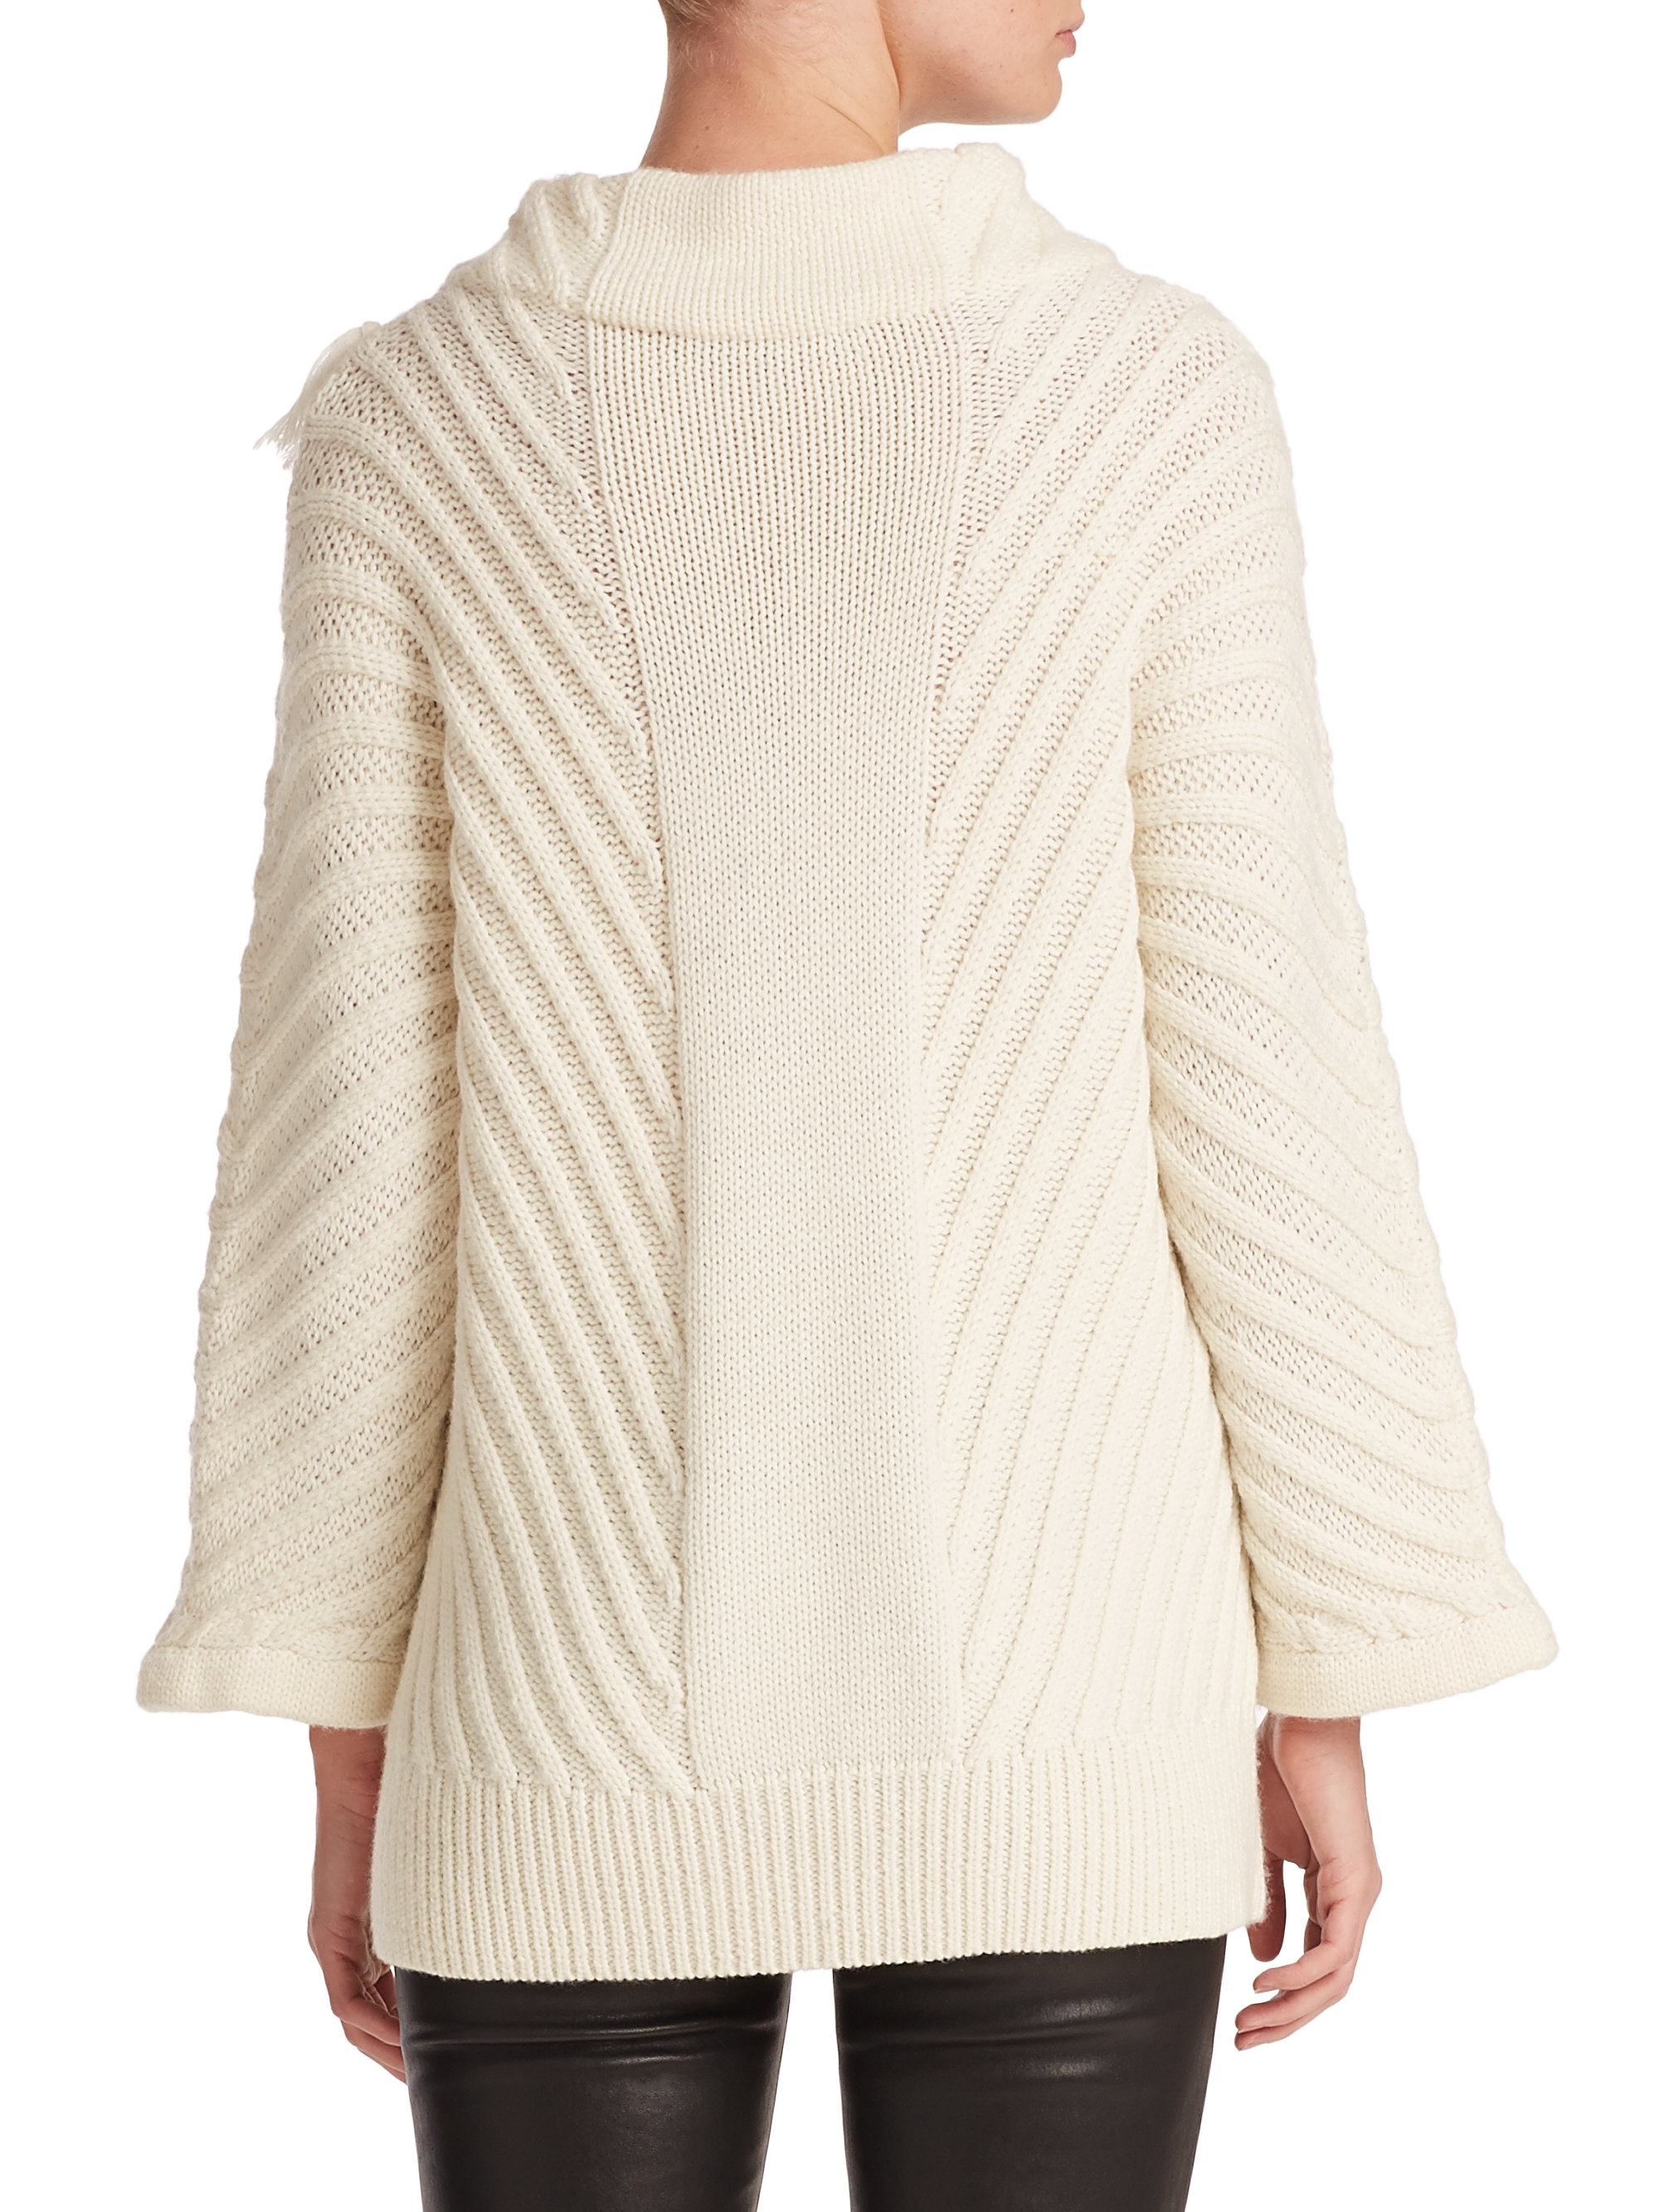 Tess giberson Chunky Cable-knit Sweater in White | Lyst